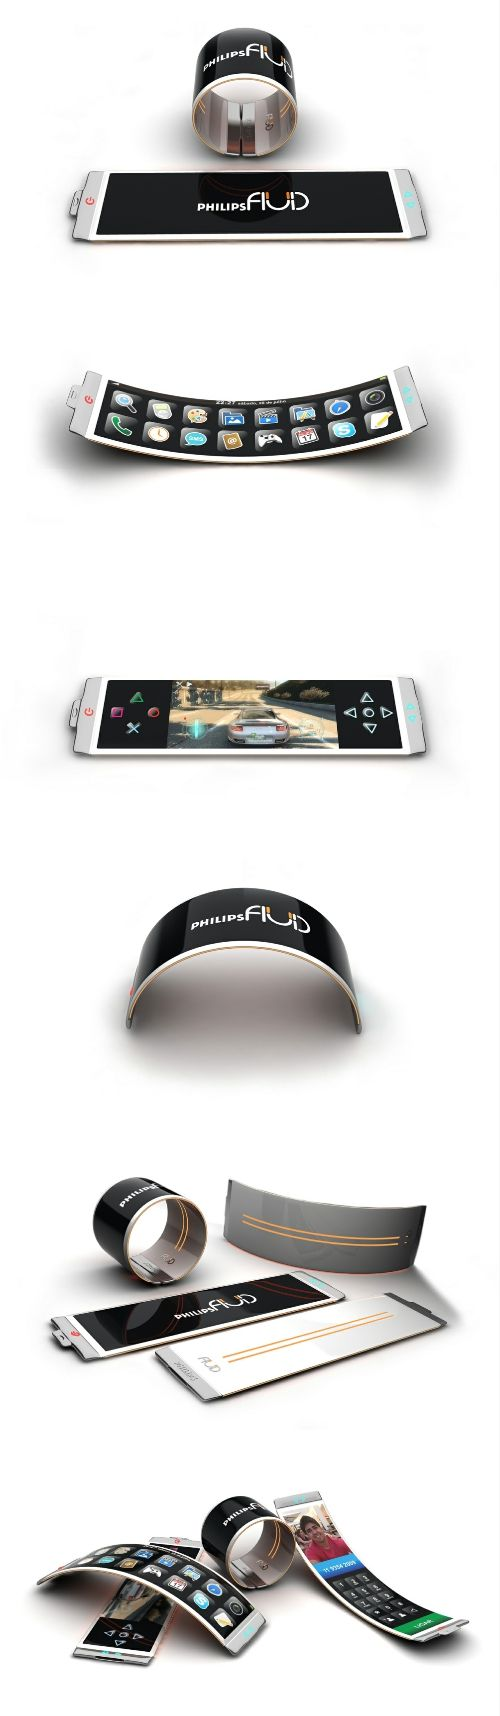 Slim bracelet phone  The advantages of organic light-emitting diode referred OLED, self-luminous nature, wide viewing angle, high contrast, low power consumption, high reaction rate, full-color, the process is simple. OLED display can be bent, has been applied in the design of electronic products. #lightemittingdiode